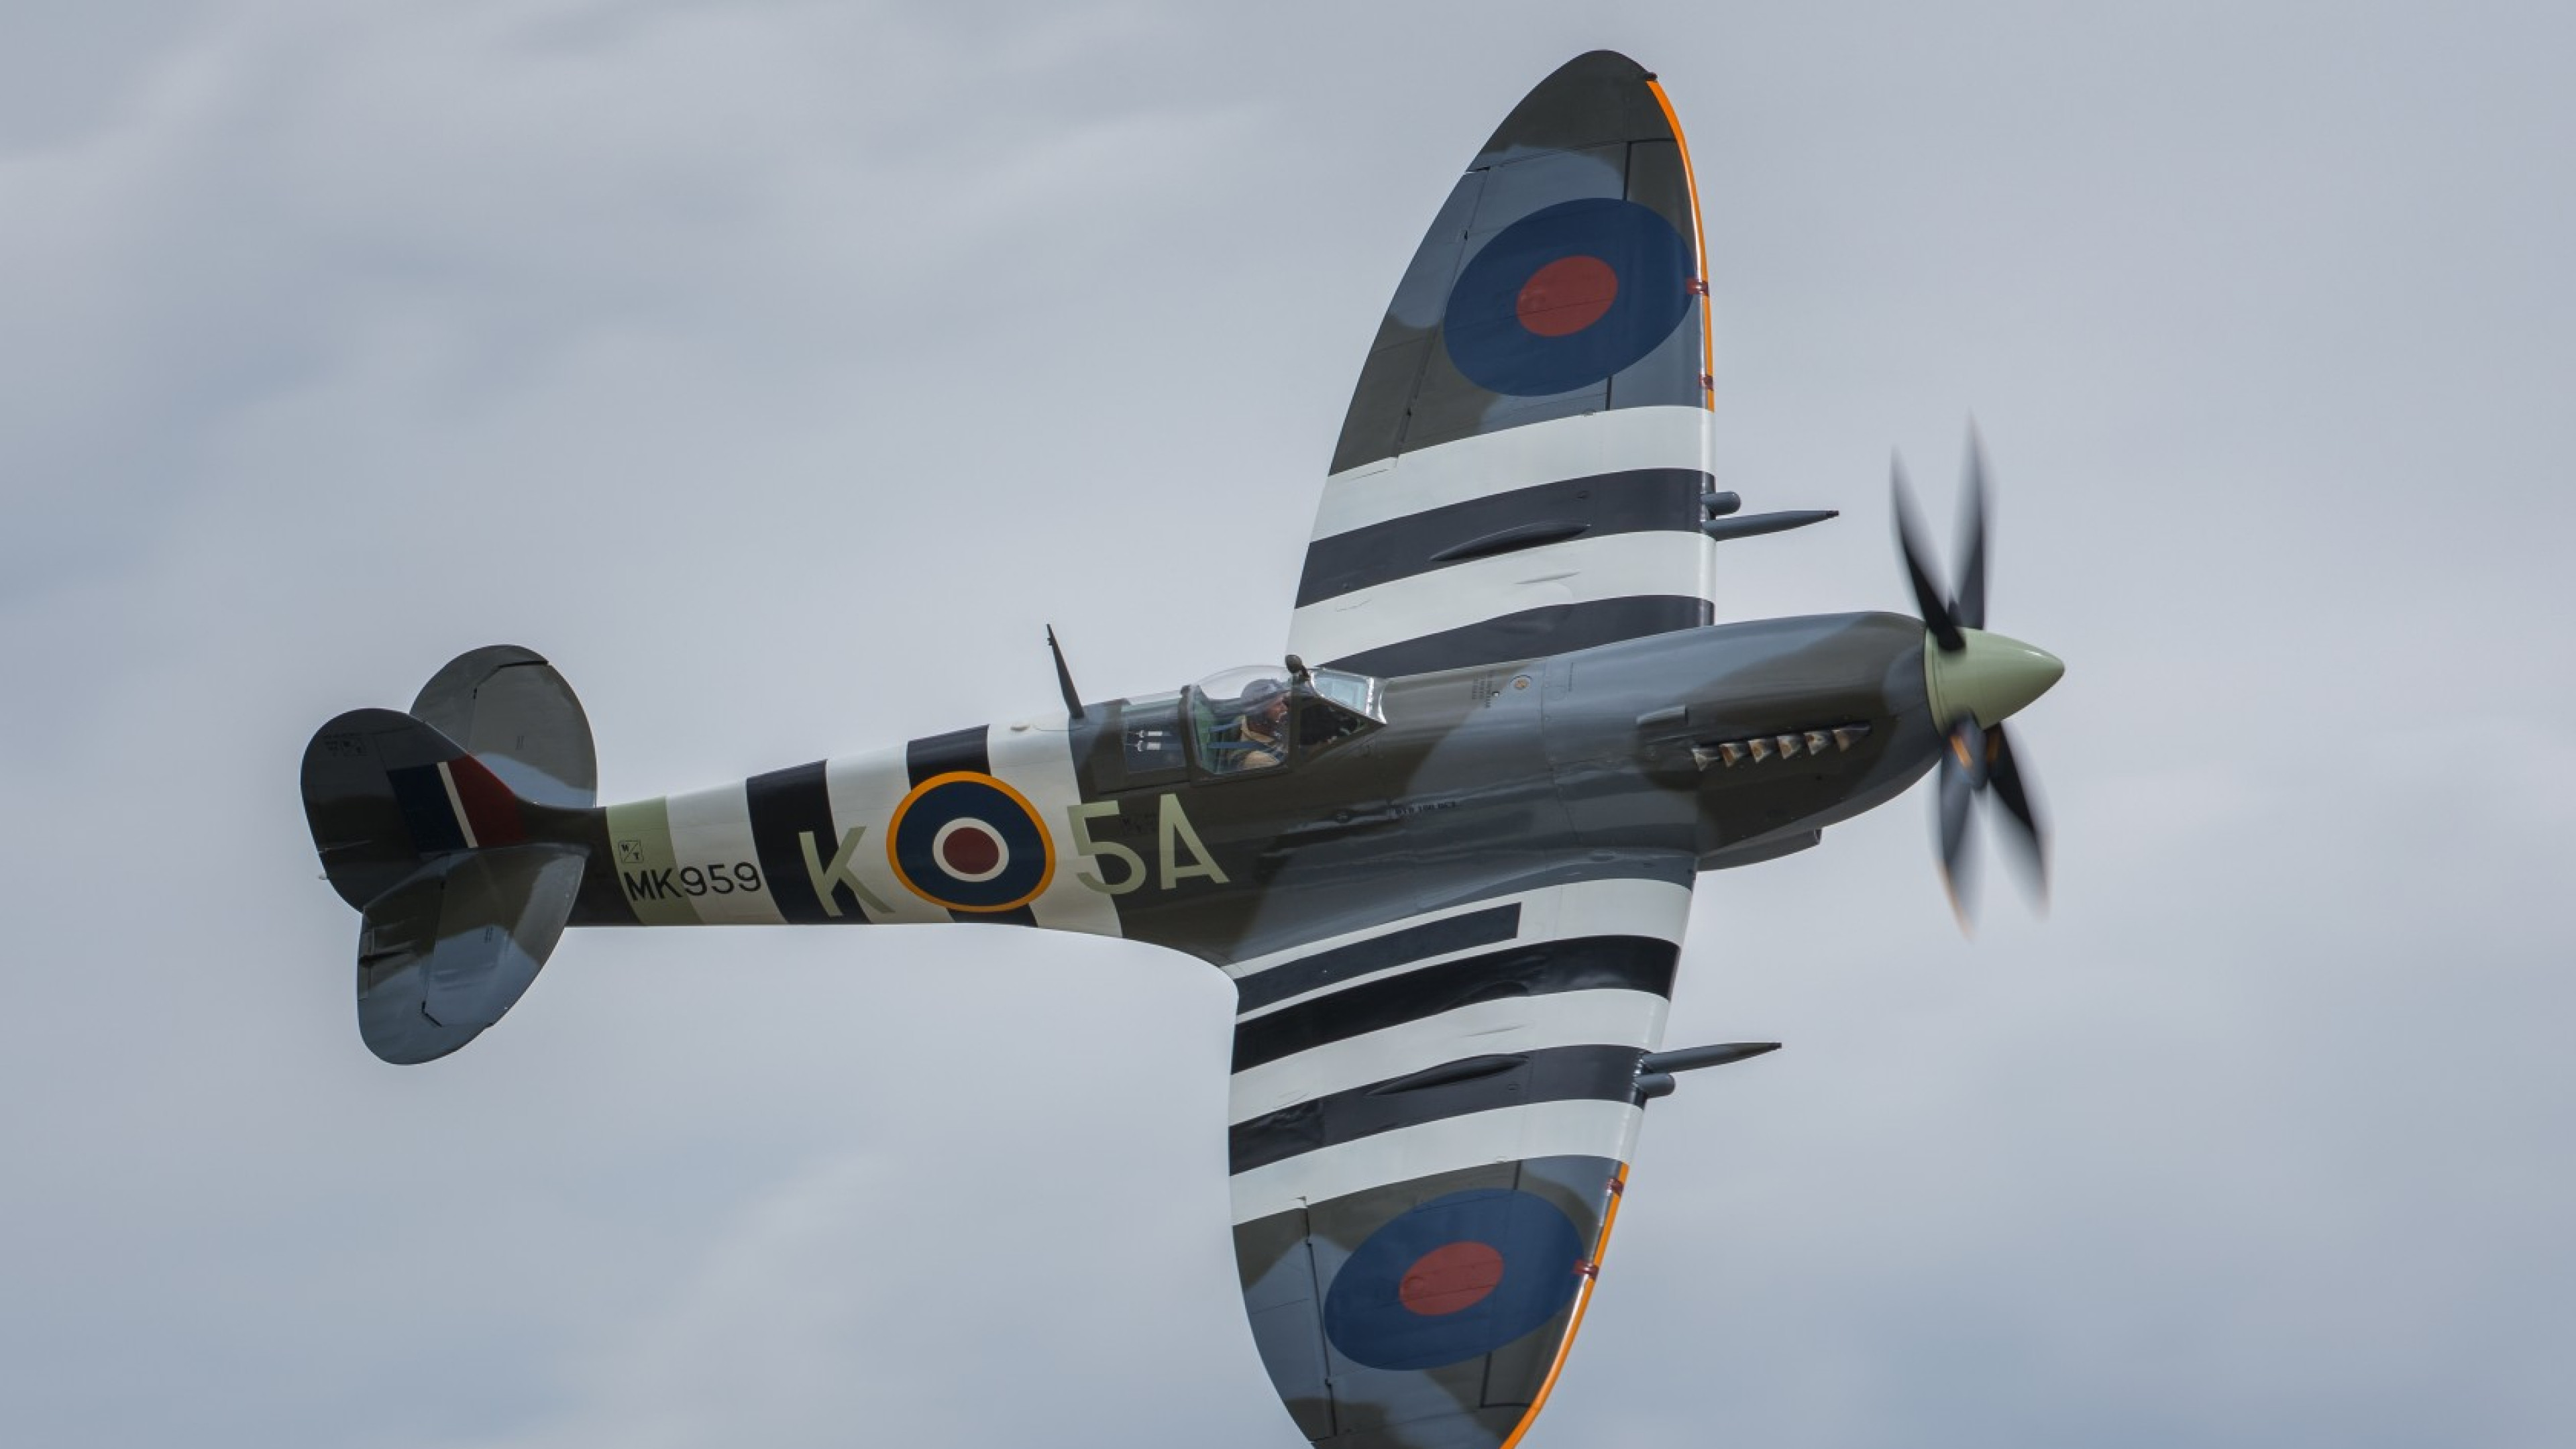 3840x2160  Wallpaper spitfire, aircraft, fighter, flying, sky